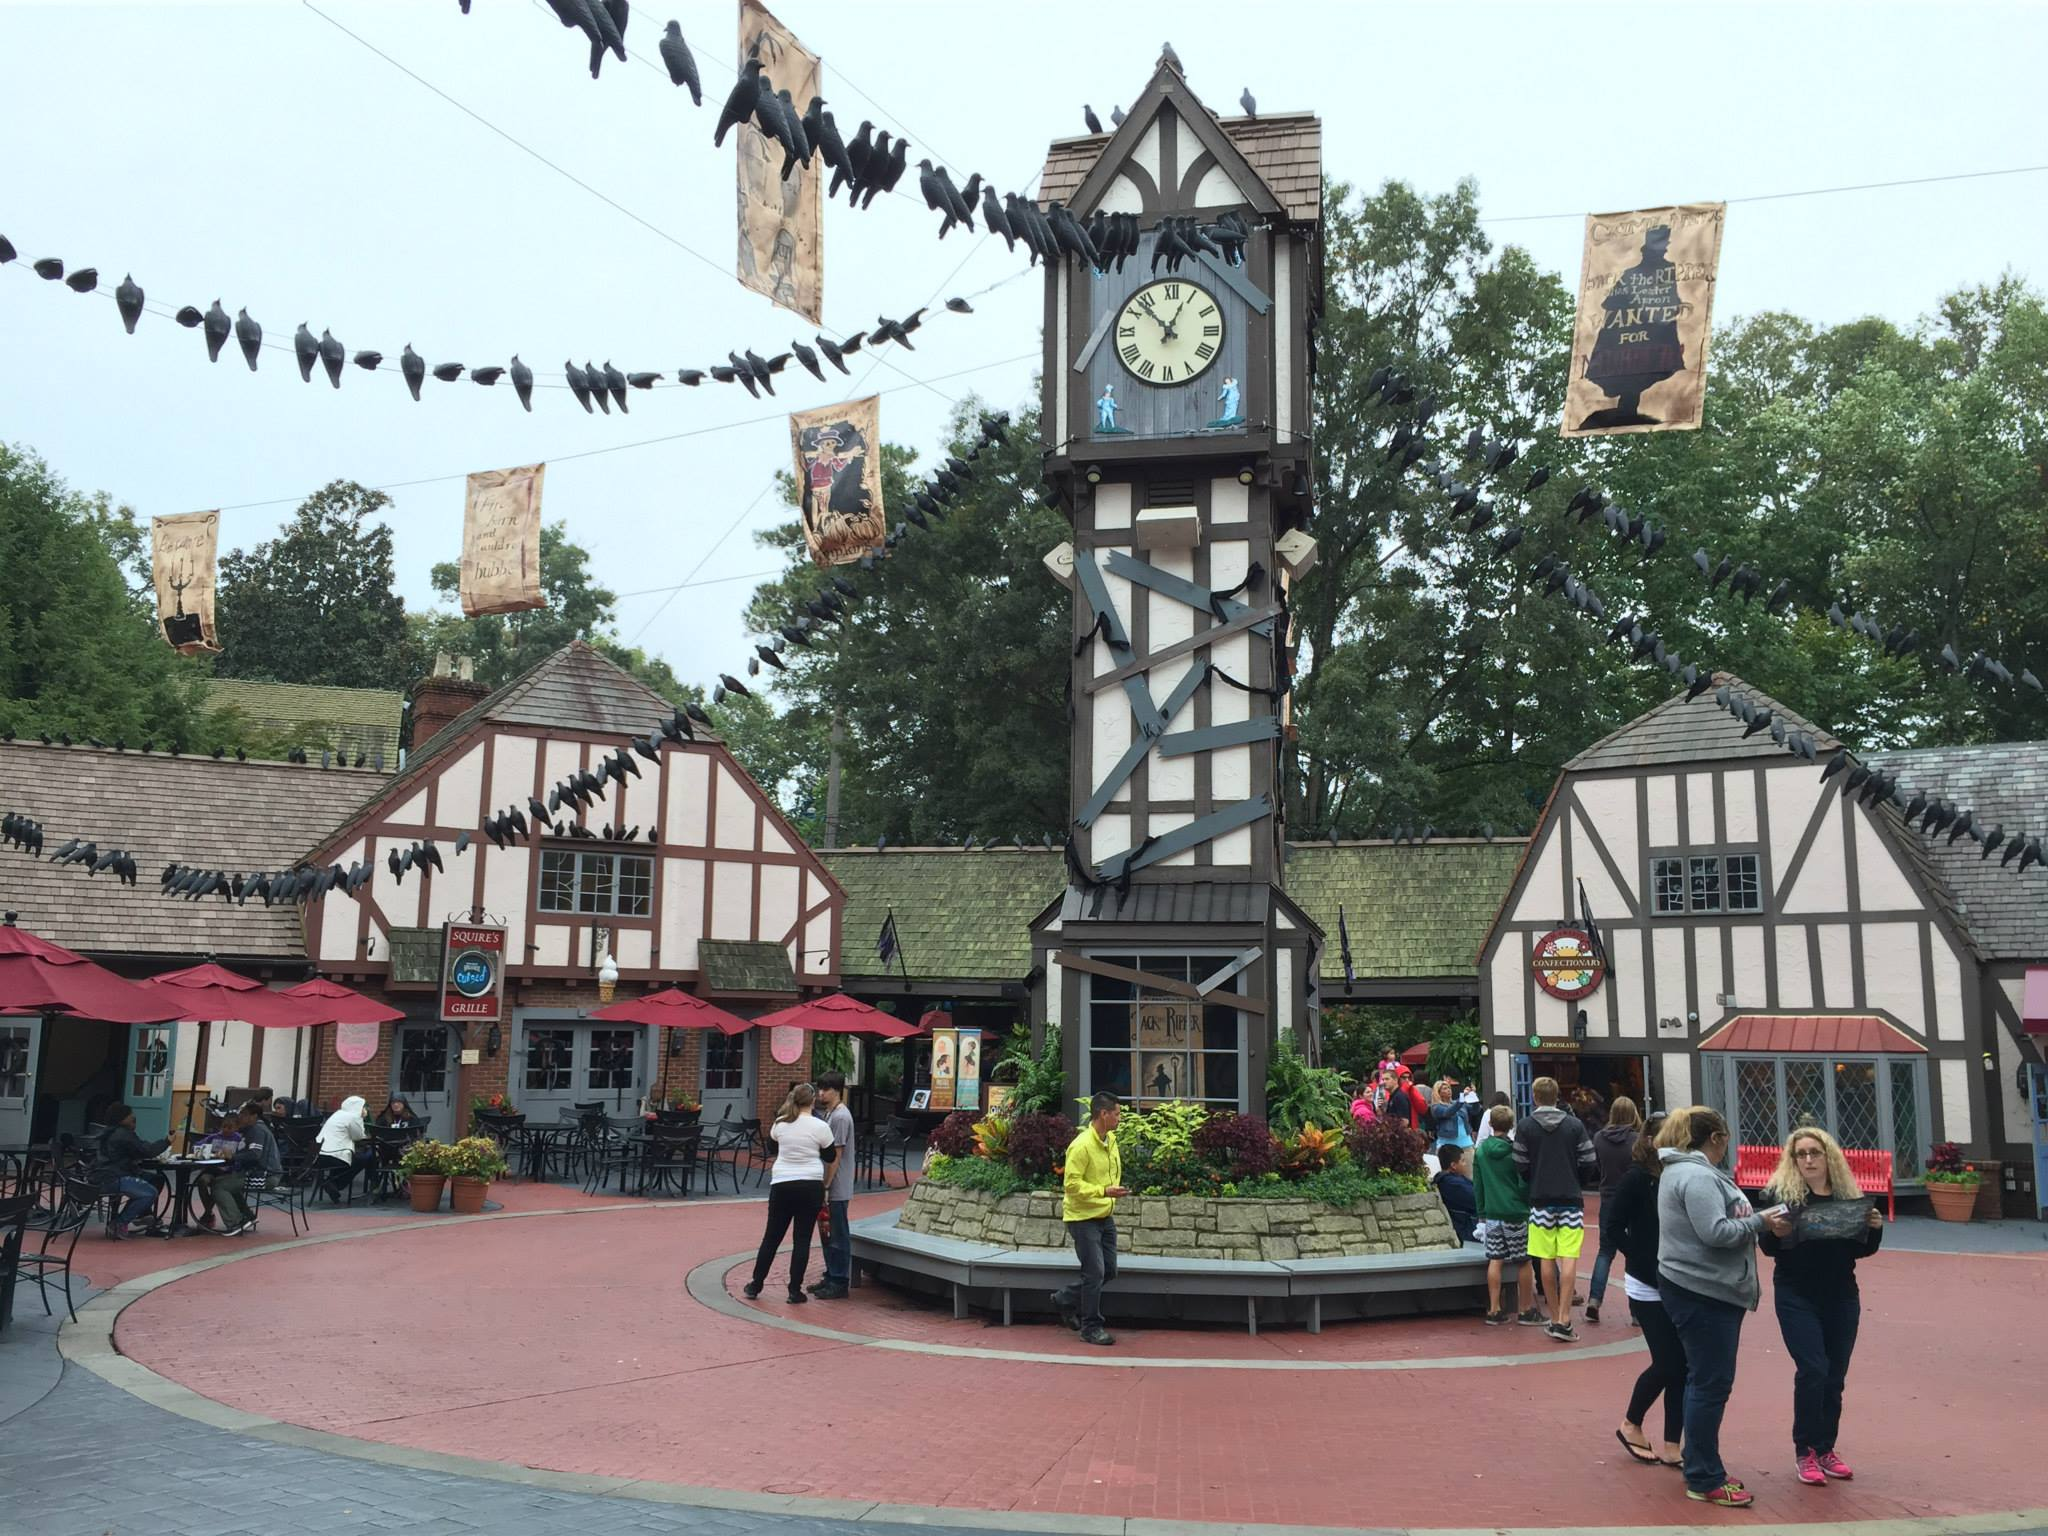 1781626 10102924907913130 3988545895816259235 o - How Much Are Quick Queue Passes At Busch Gardens Williamsburg